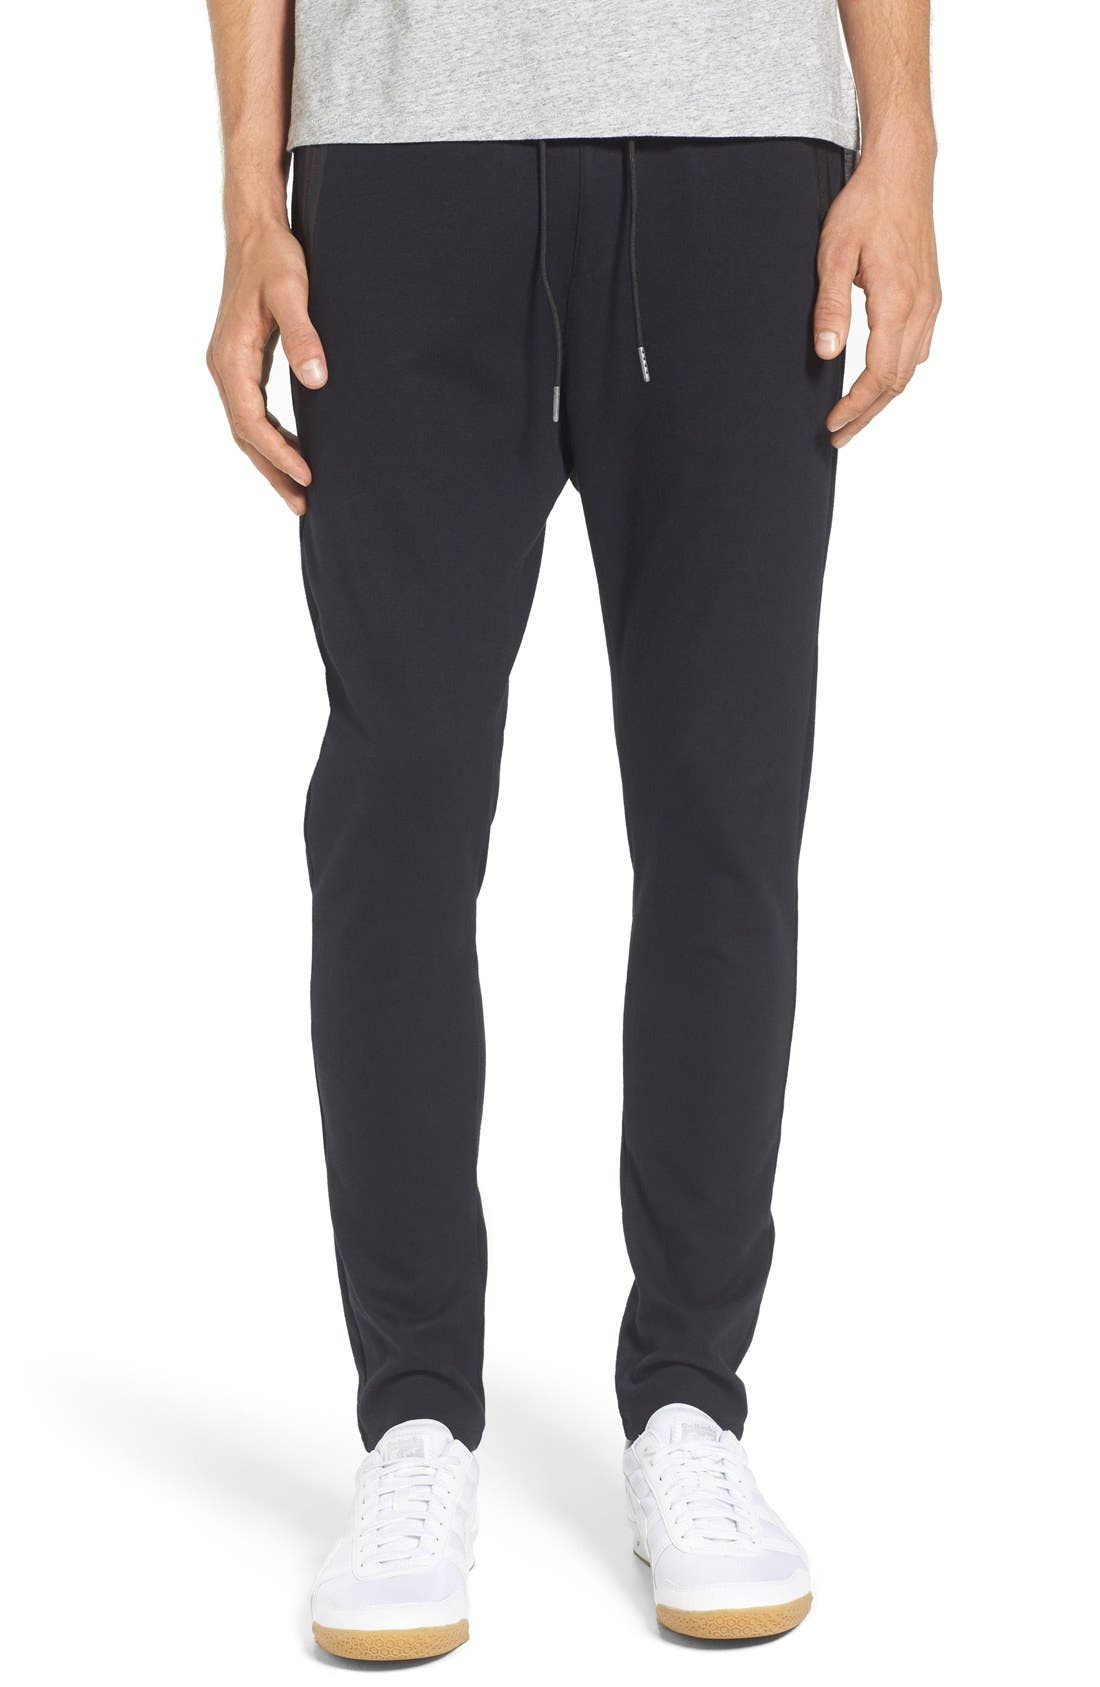 'Cling Ponte' Jogger Pants,                             Main thumbnail 1, color,                             Black